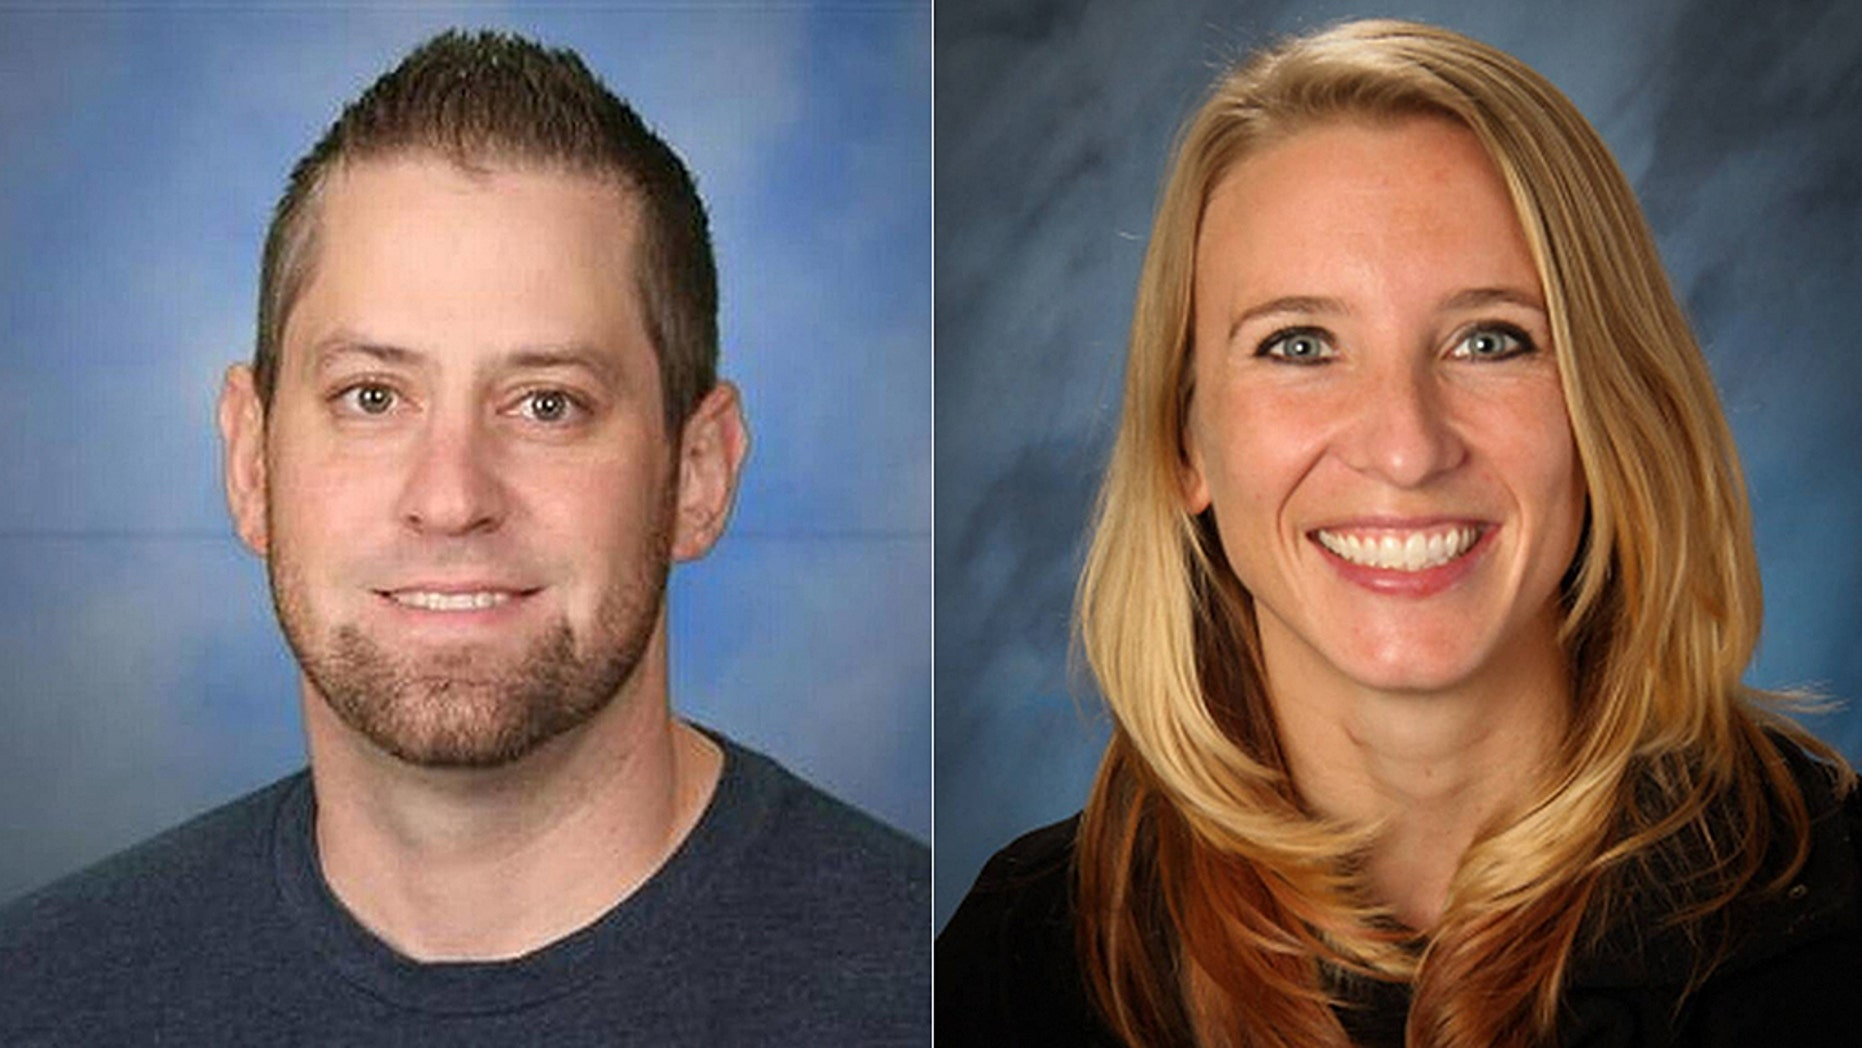 Dustin Altshuler, 37, who is accused of groping a female taxi driver, reportedly killed teacher Laura Cole, 35, before turning the gun on himself, police say.